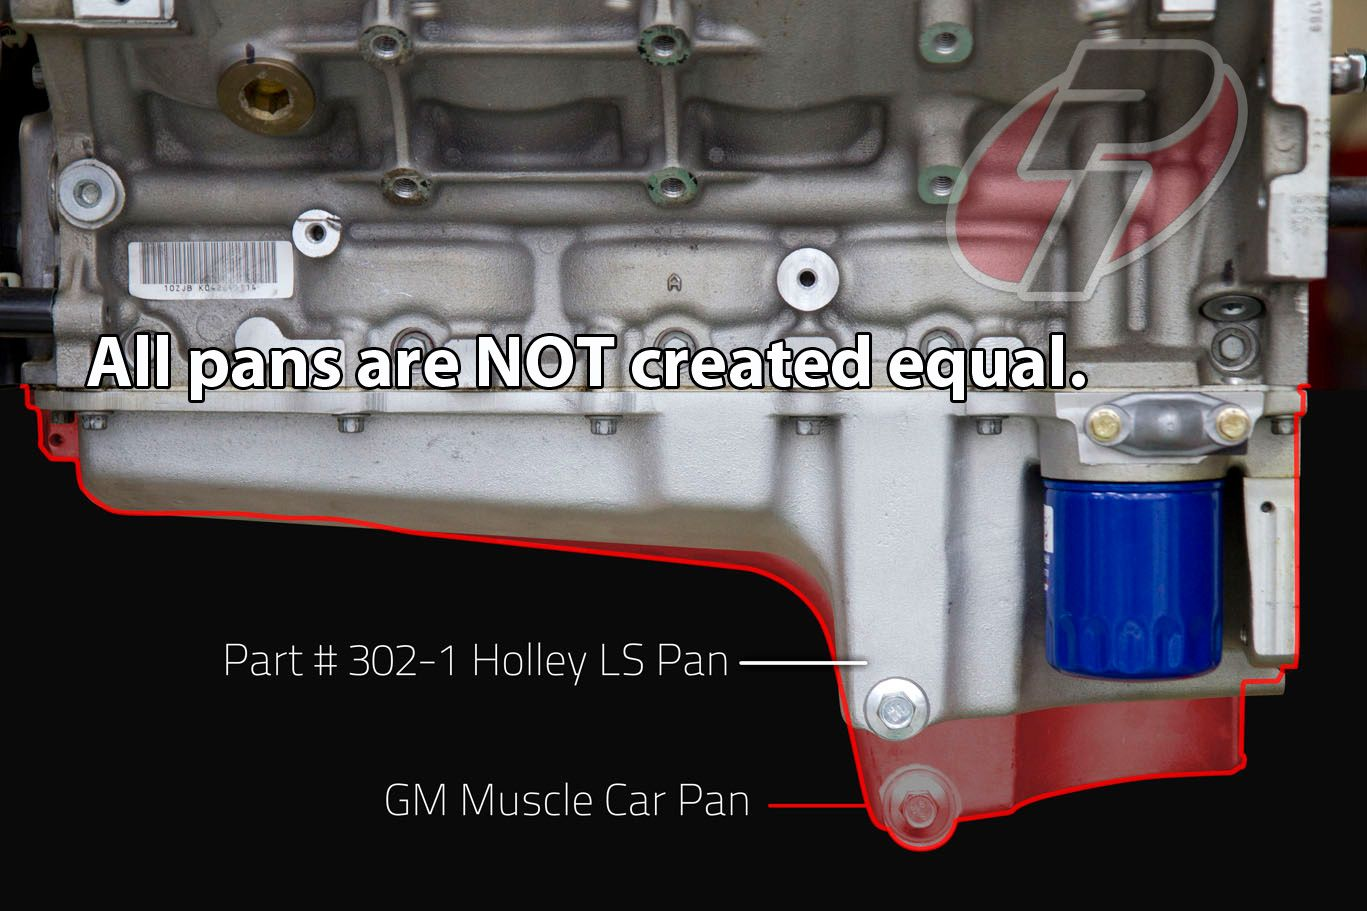 Holley 302 1 Ls Retro Fit Oil Pan Vehicle Swap Pinterest Gm Ly6 Engine Diagram Is Much Better Than The Version Performance